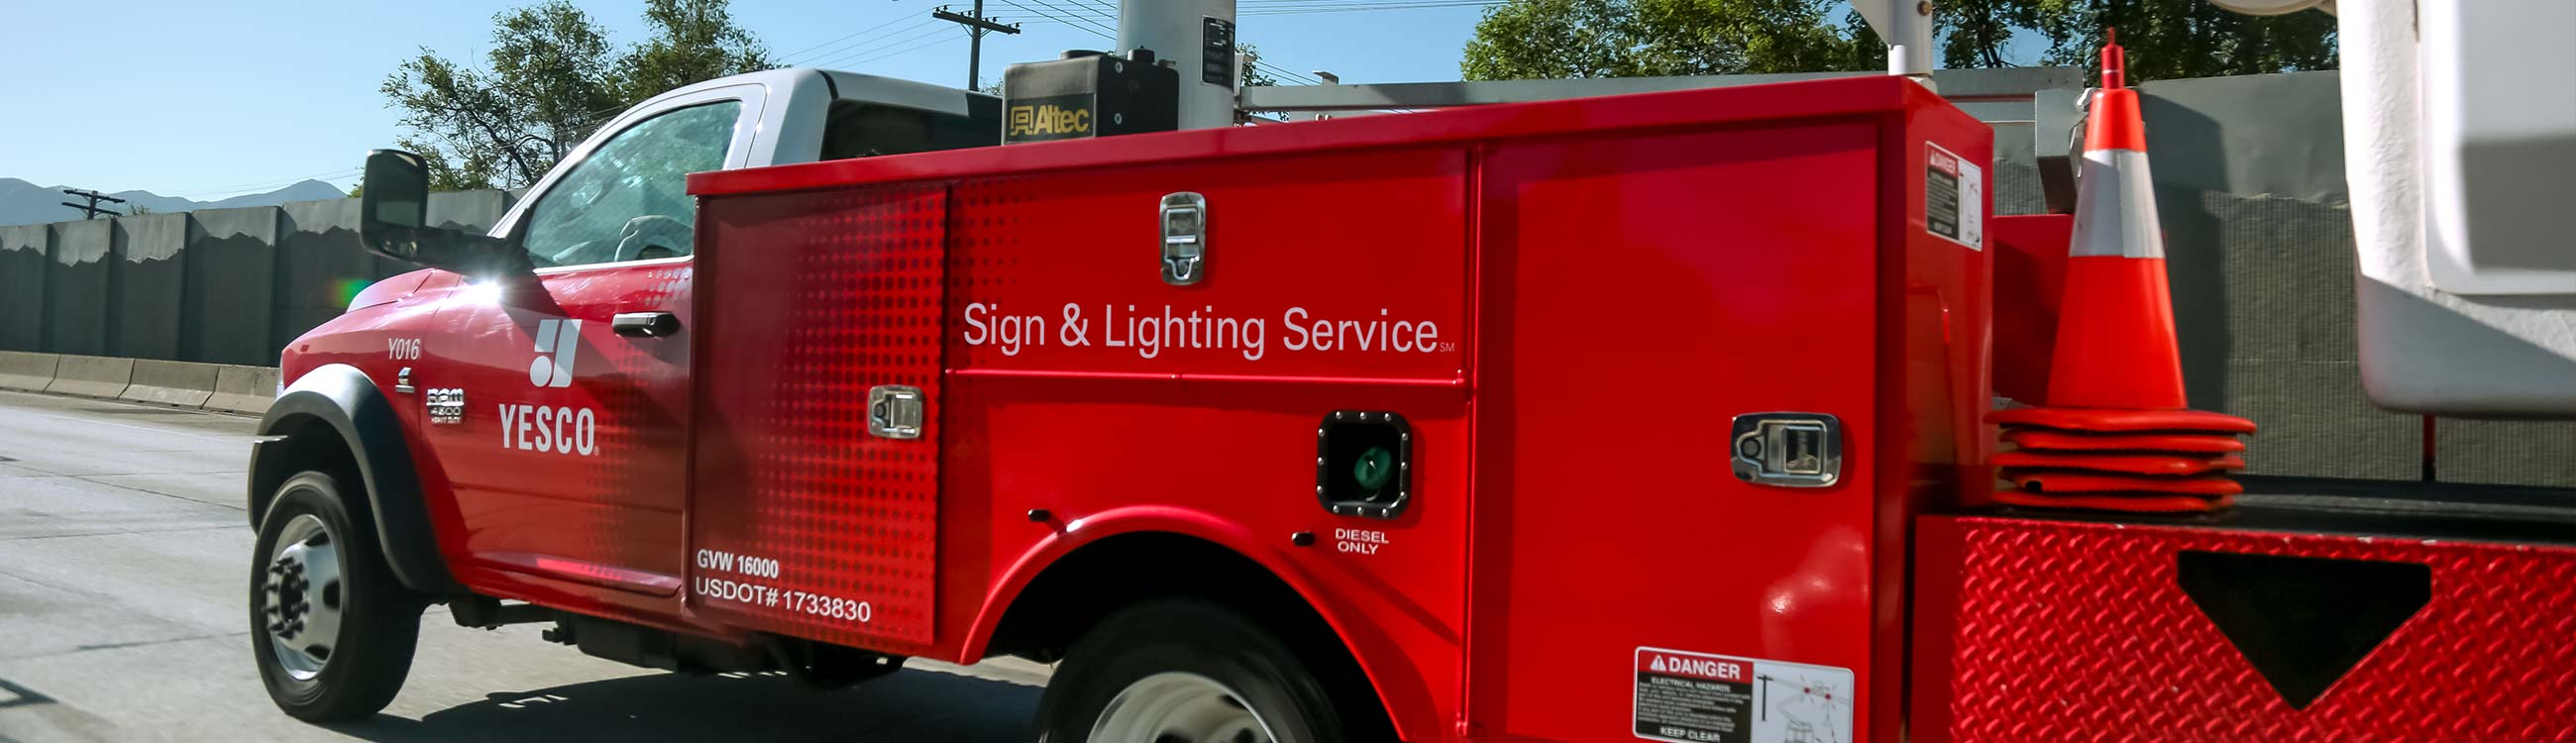 Sign & Lighting Service Tri-Cities